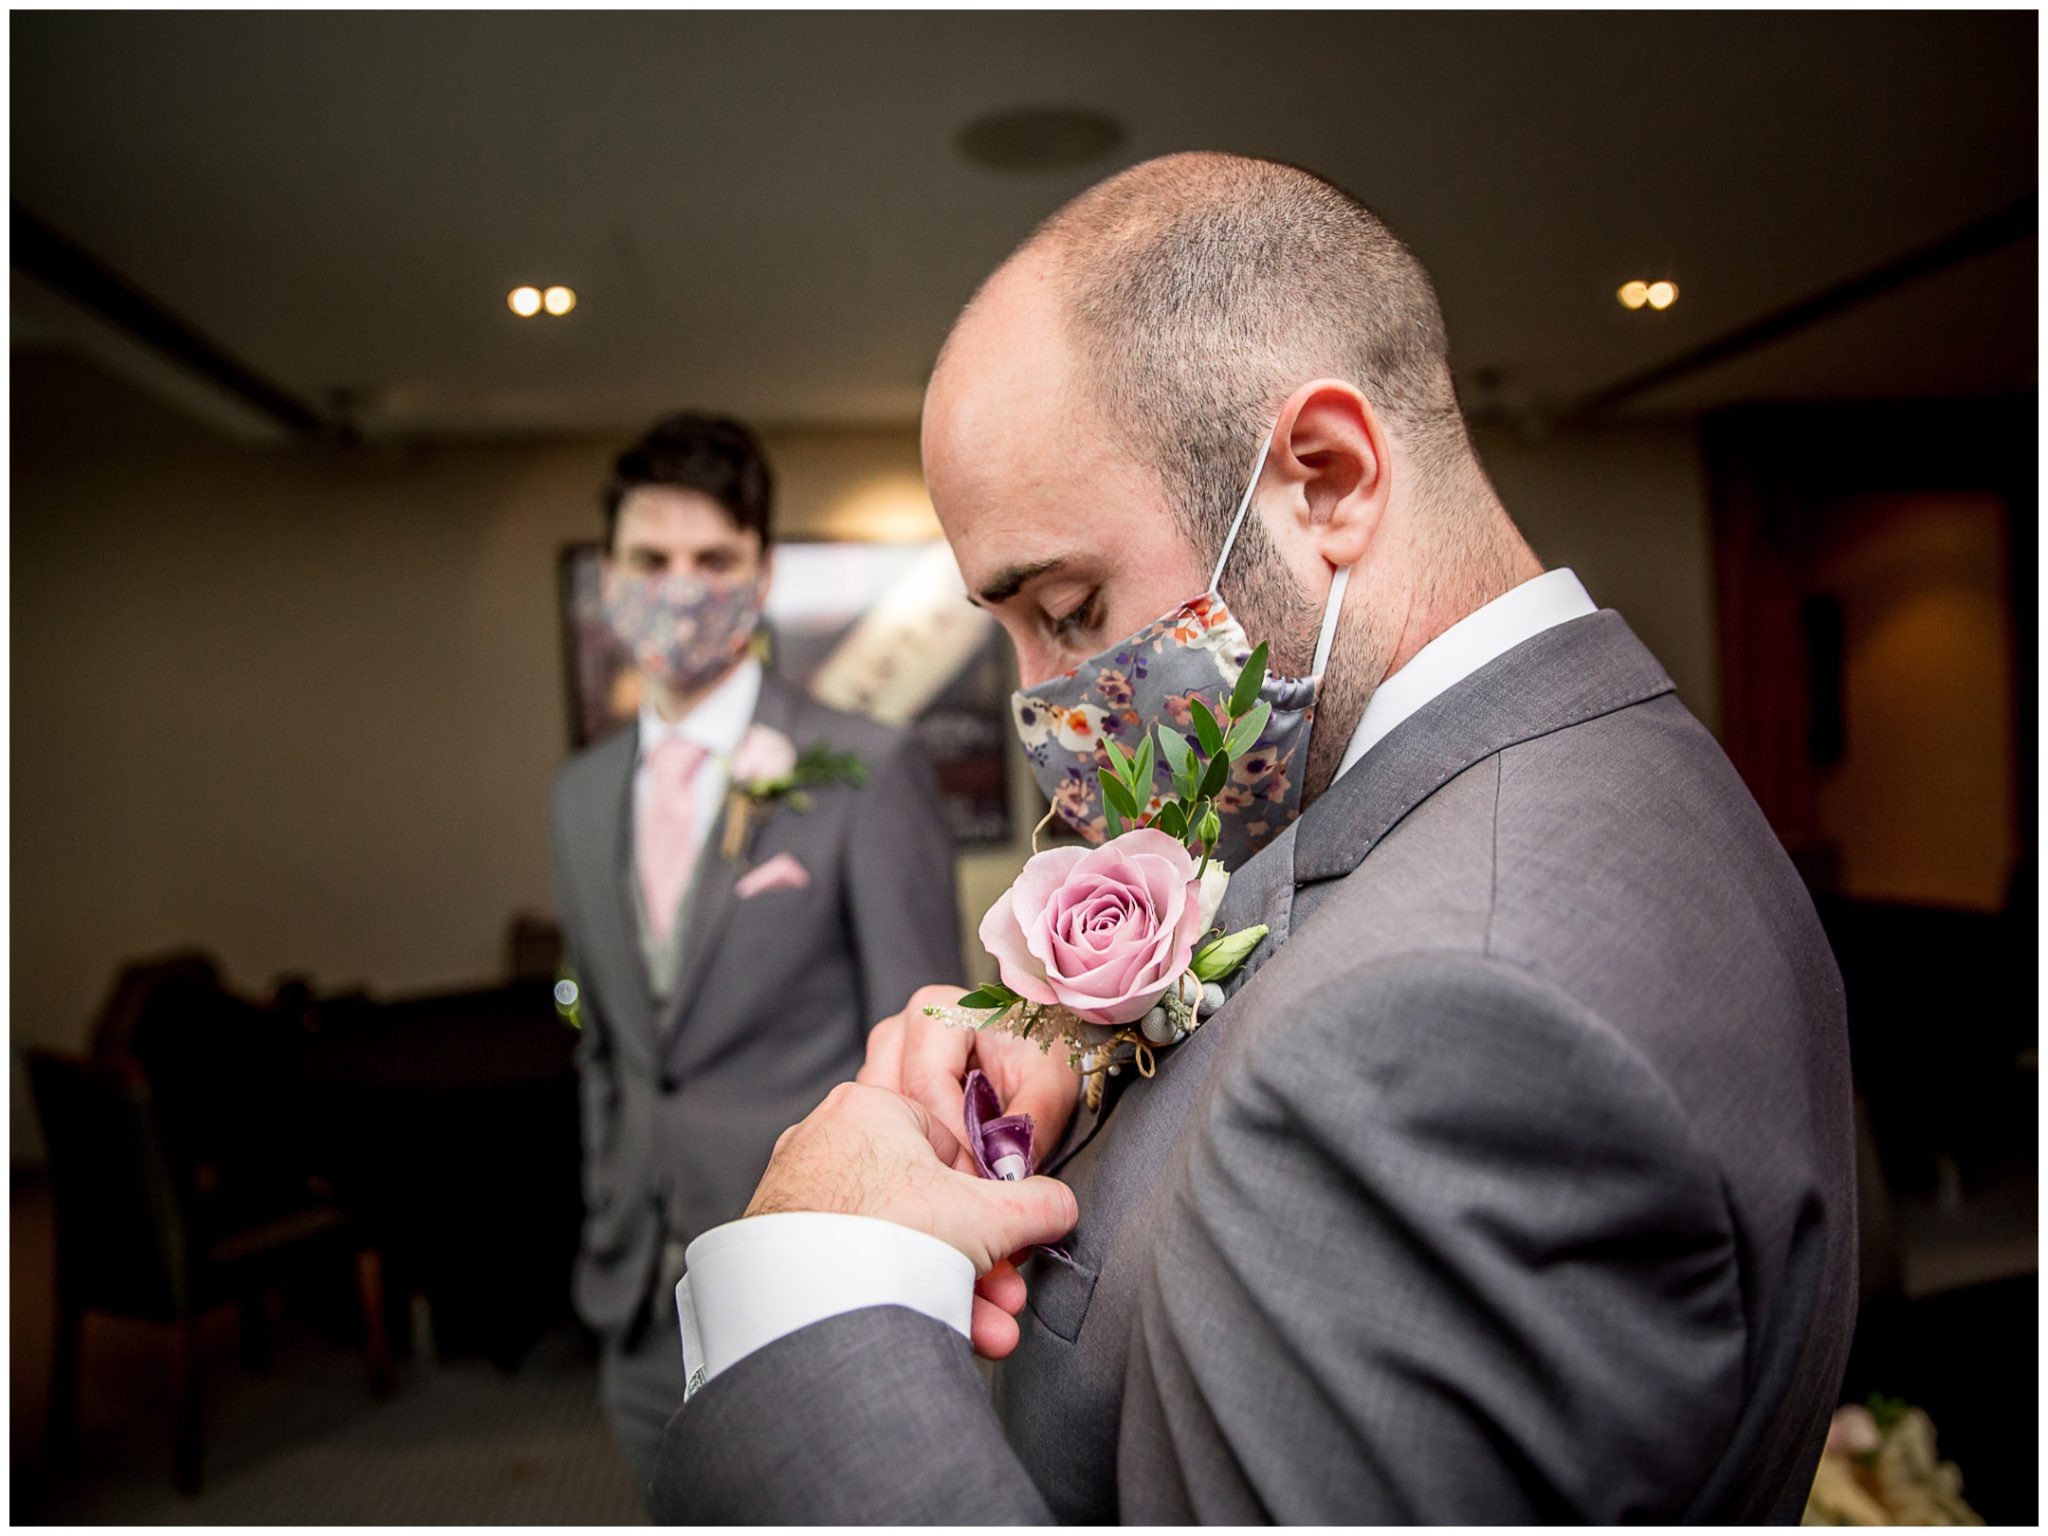 Groom getting ready and putting flower in button hole, wearing mask